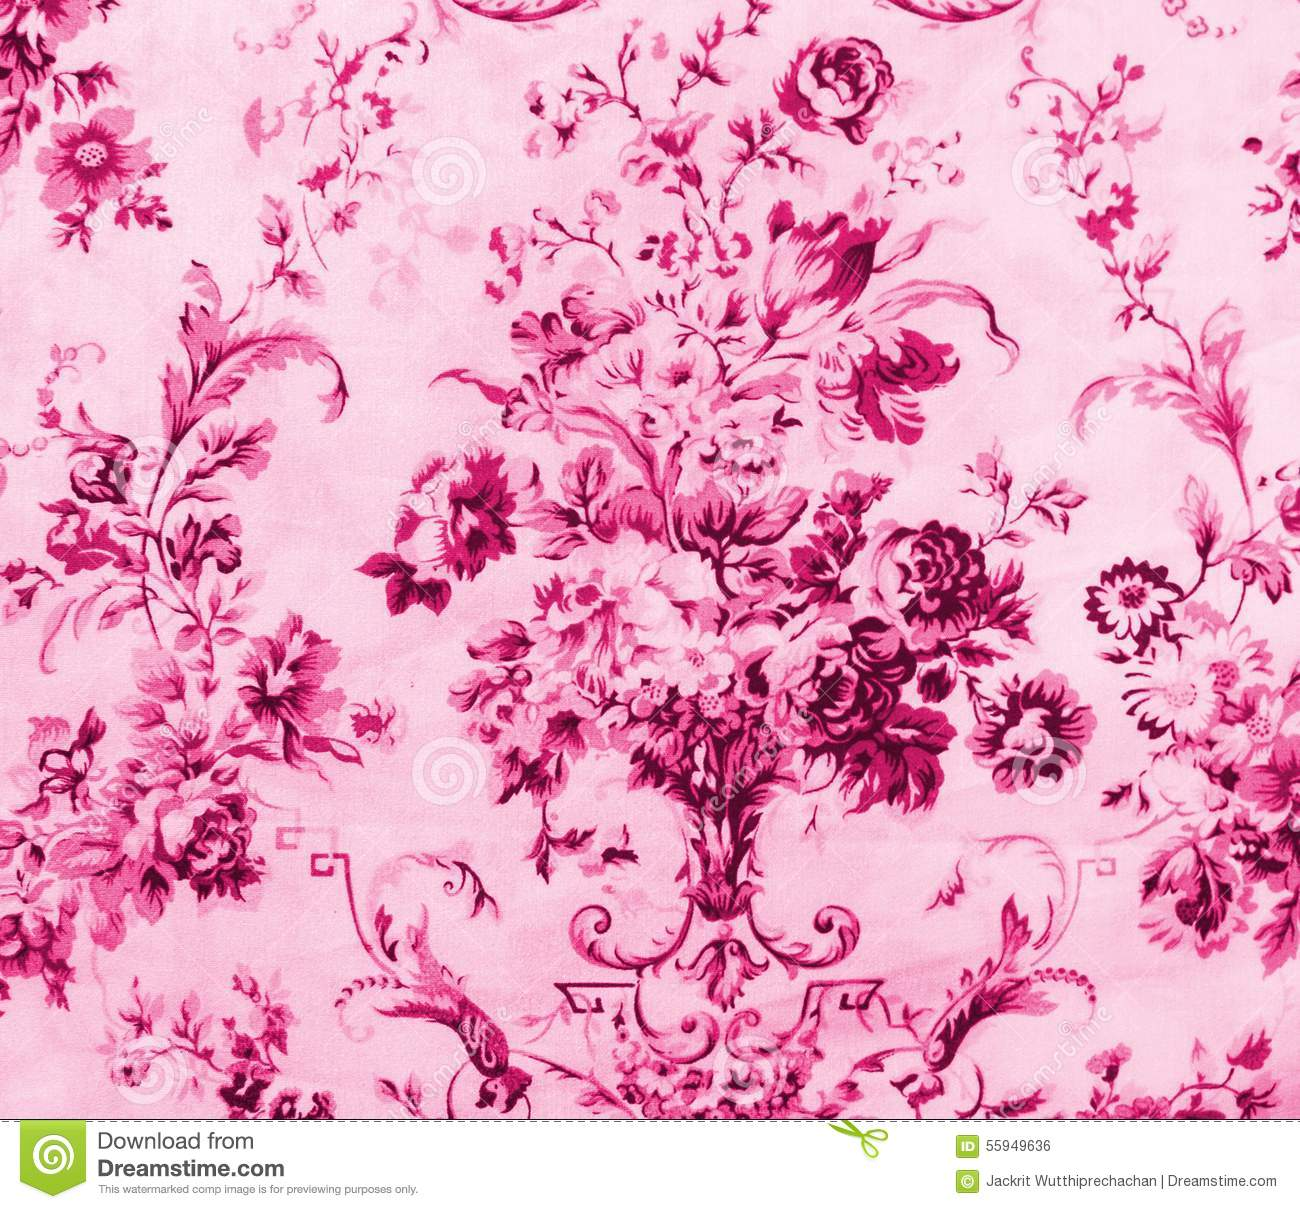 Seamless pink floral pattern - photo#40